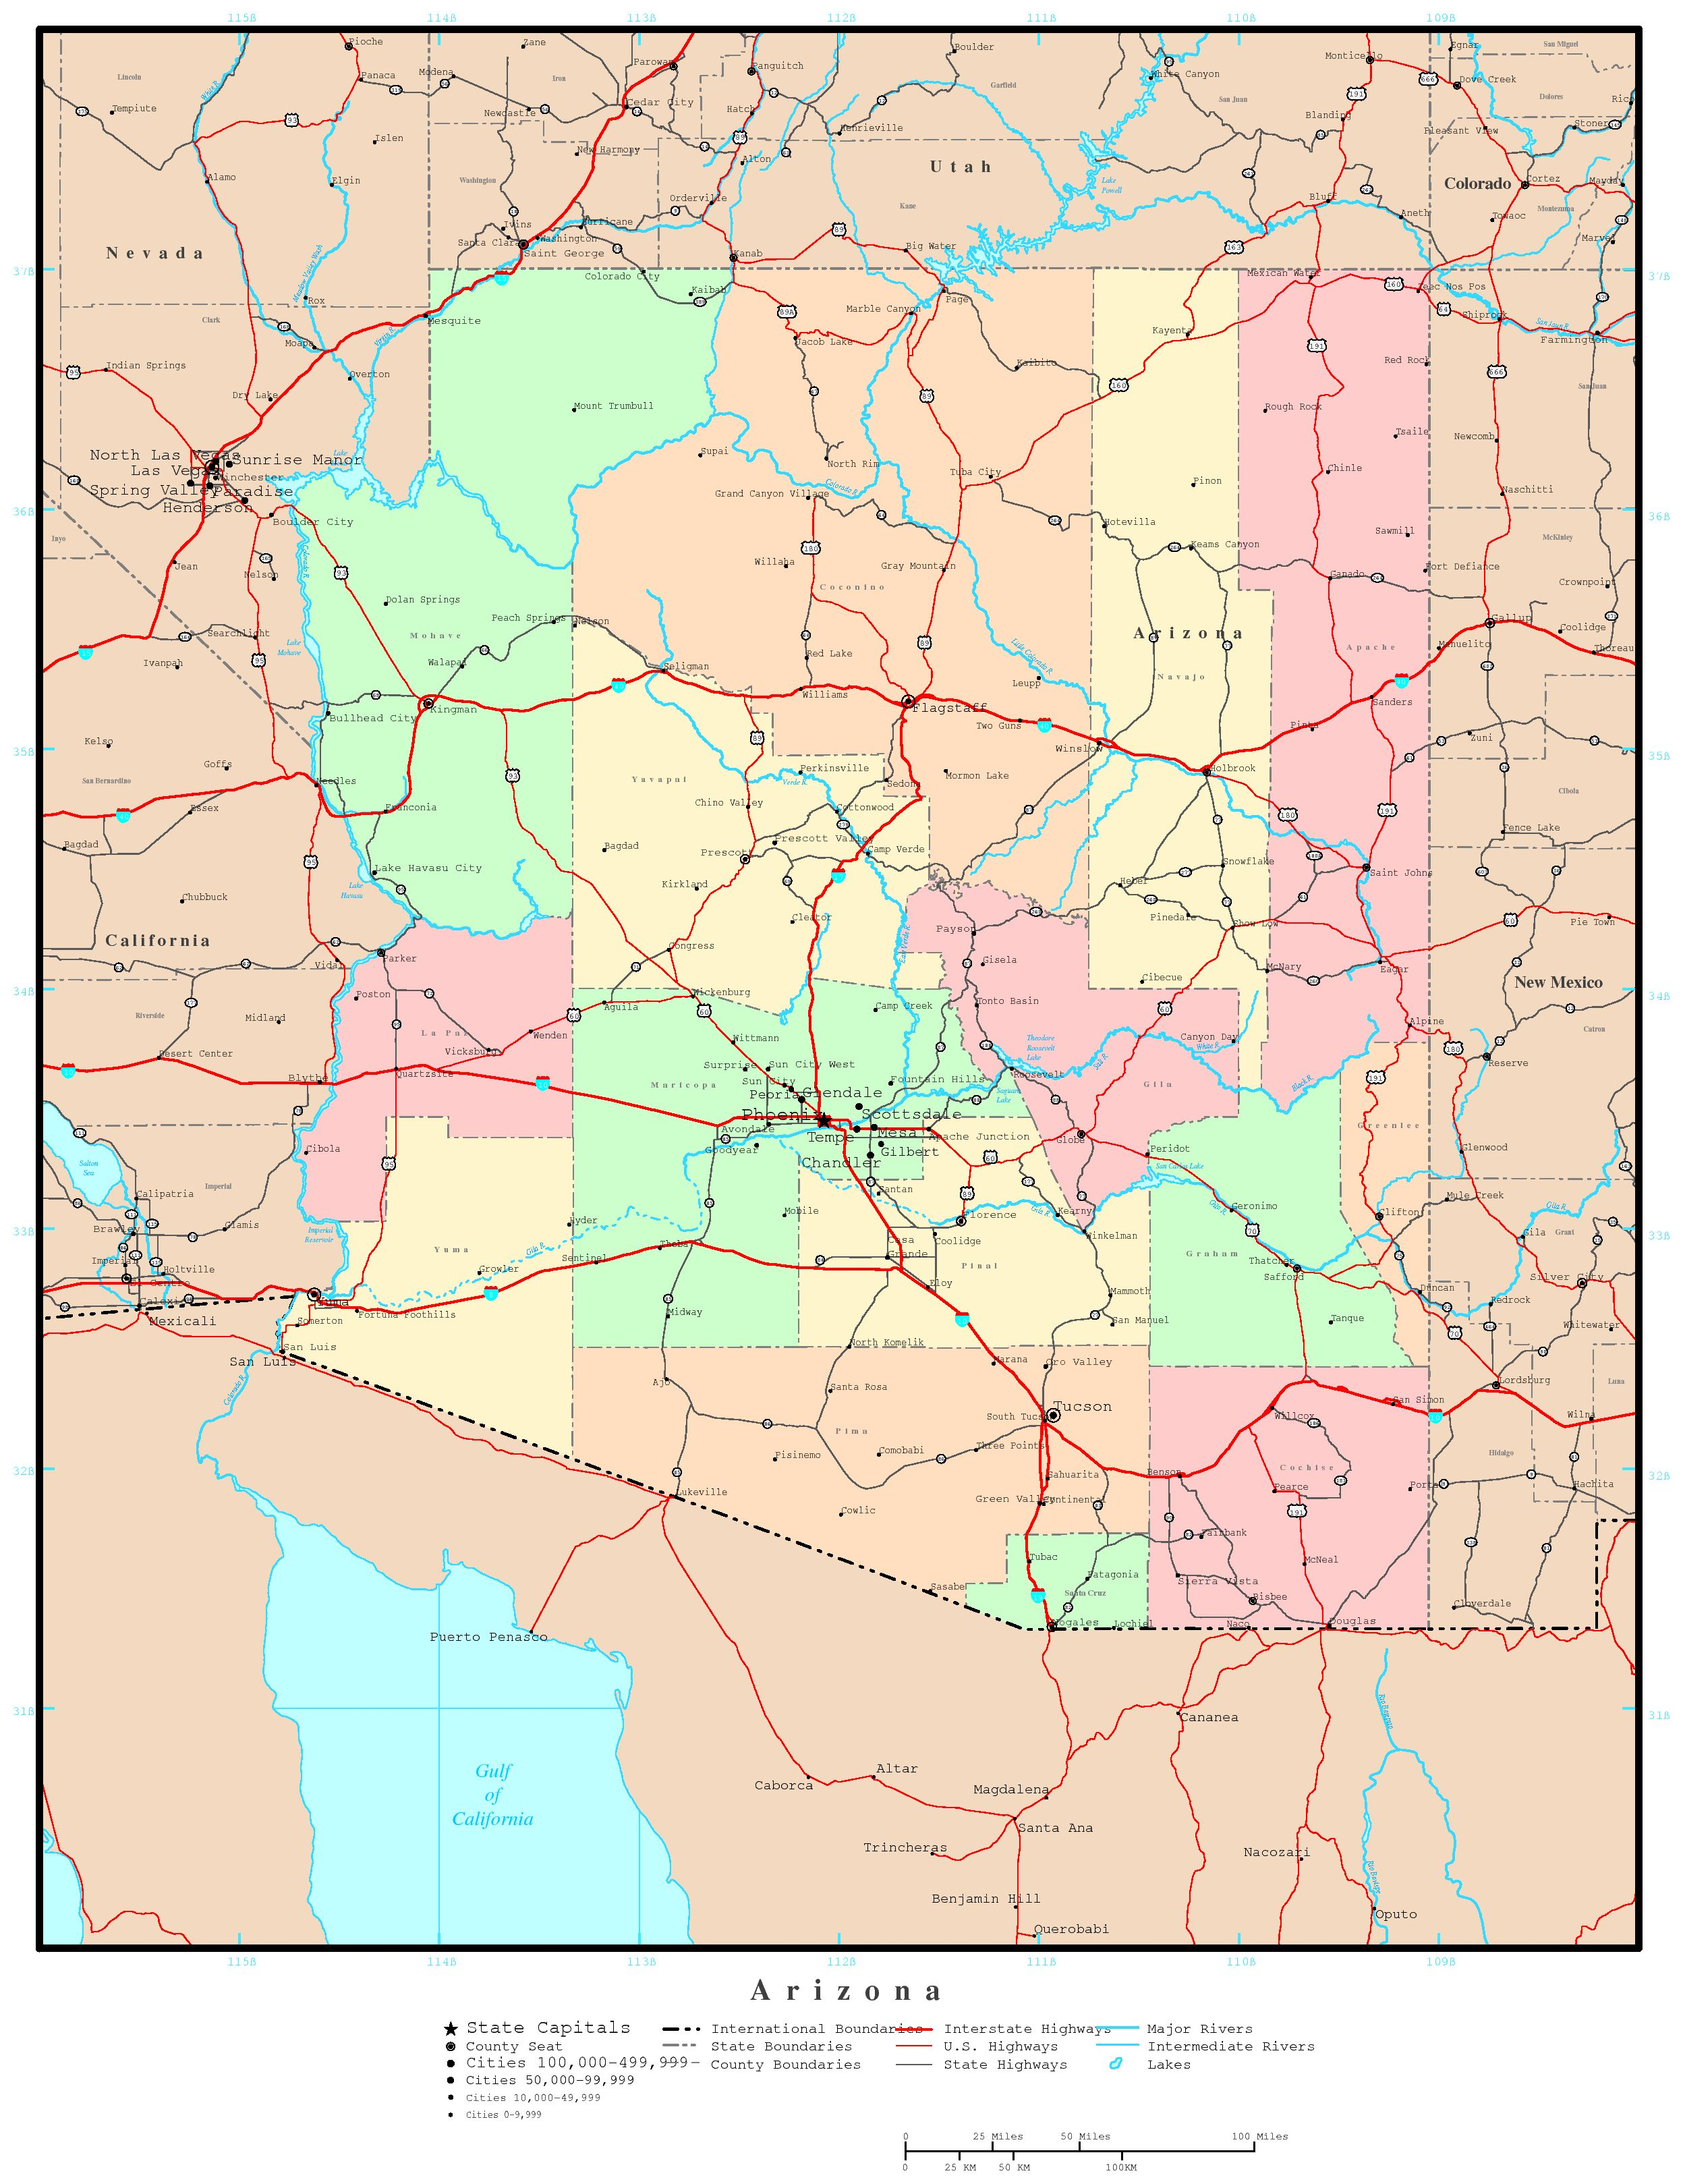 Arizona Political Map - Mapof arizona